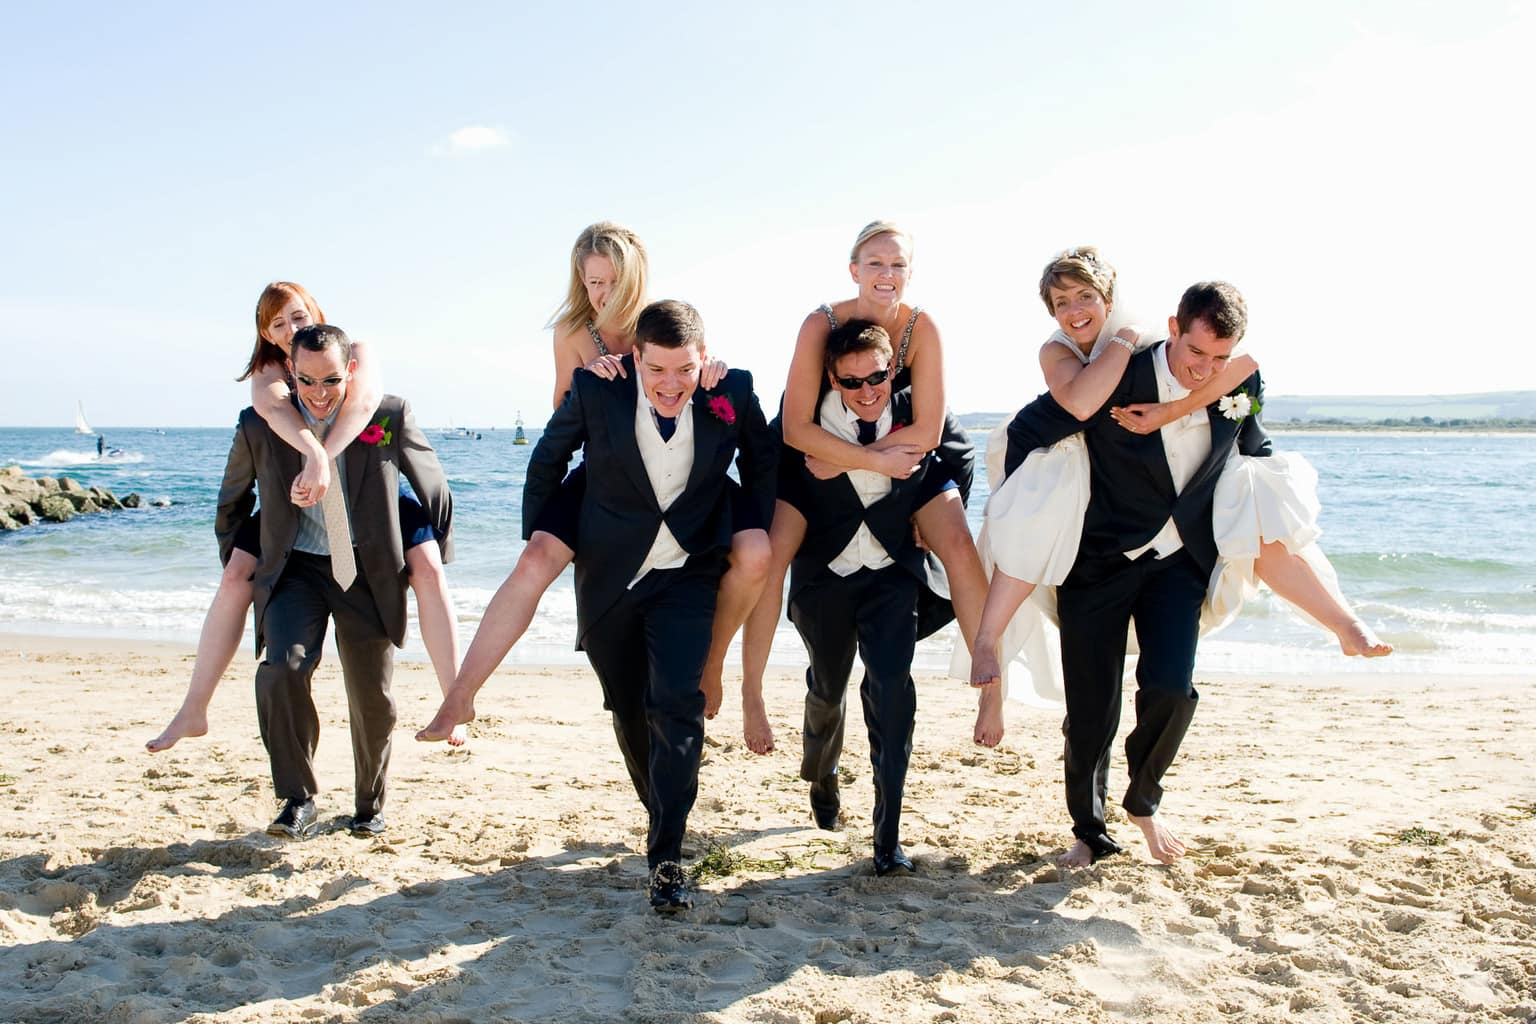 Bournemouth Beach Wedding Photo